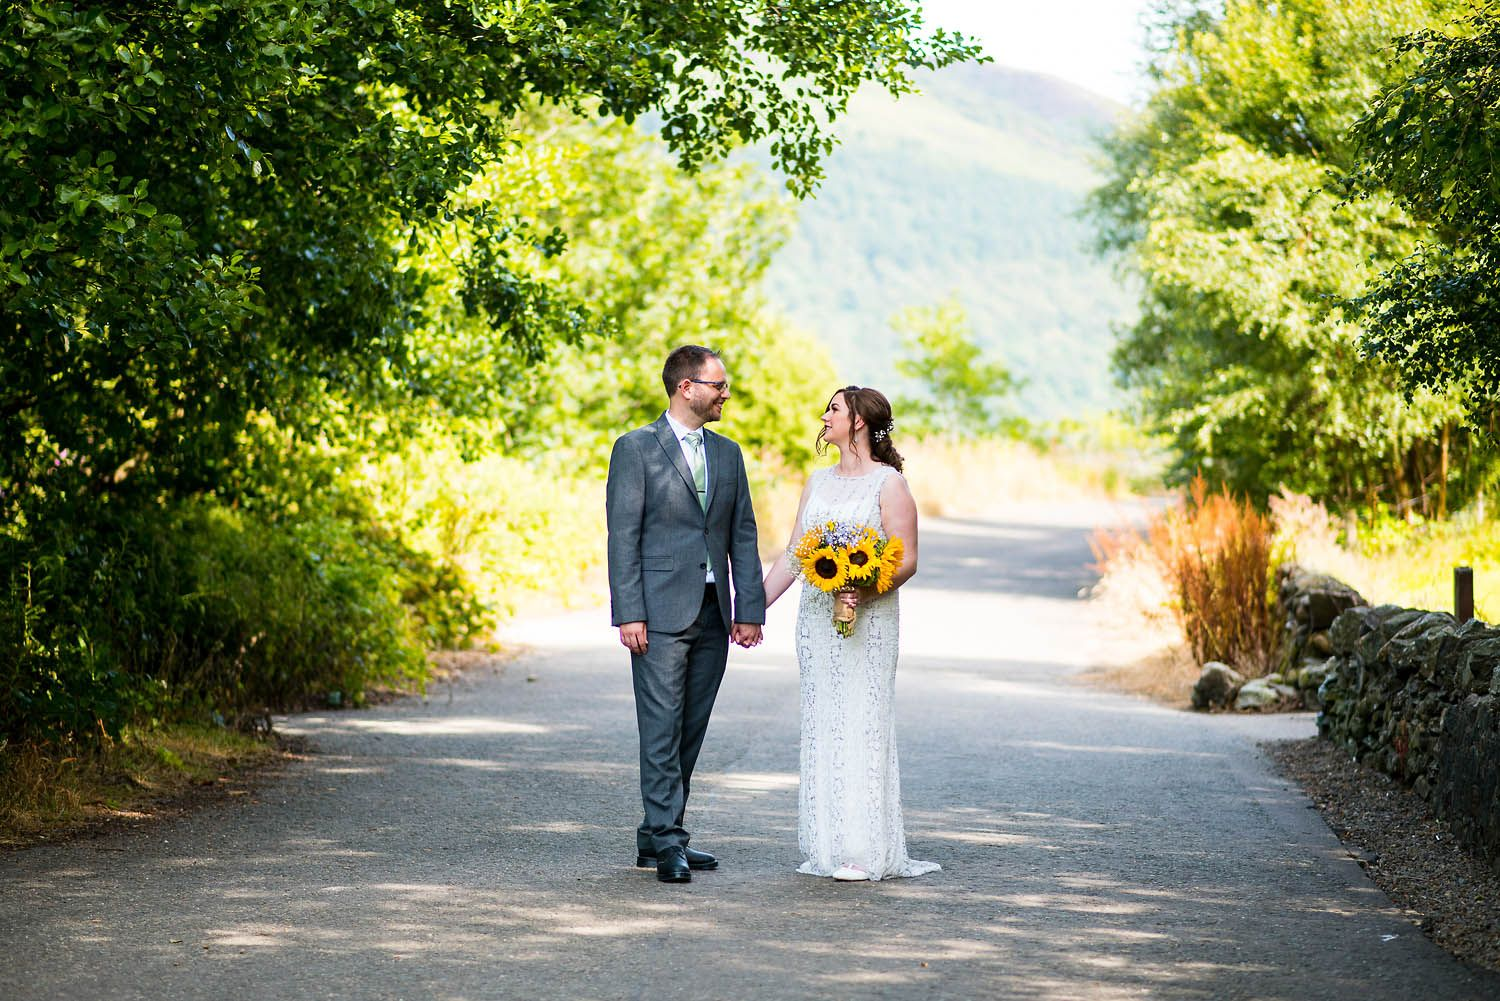 A beautiful summer wedding with Lynsey & Richard's at Stuckgowan House on Loch Lomond